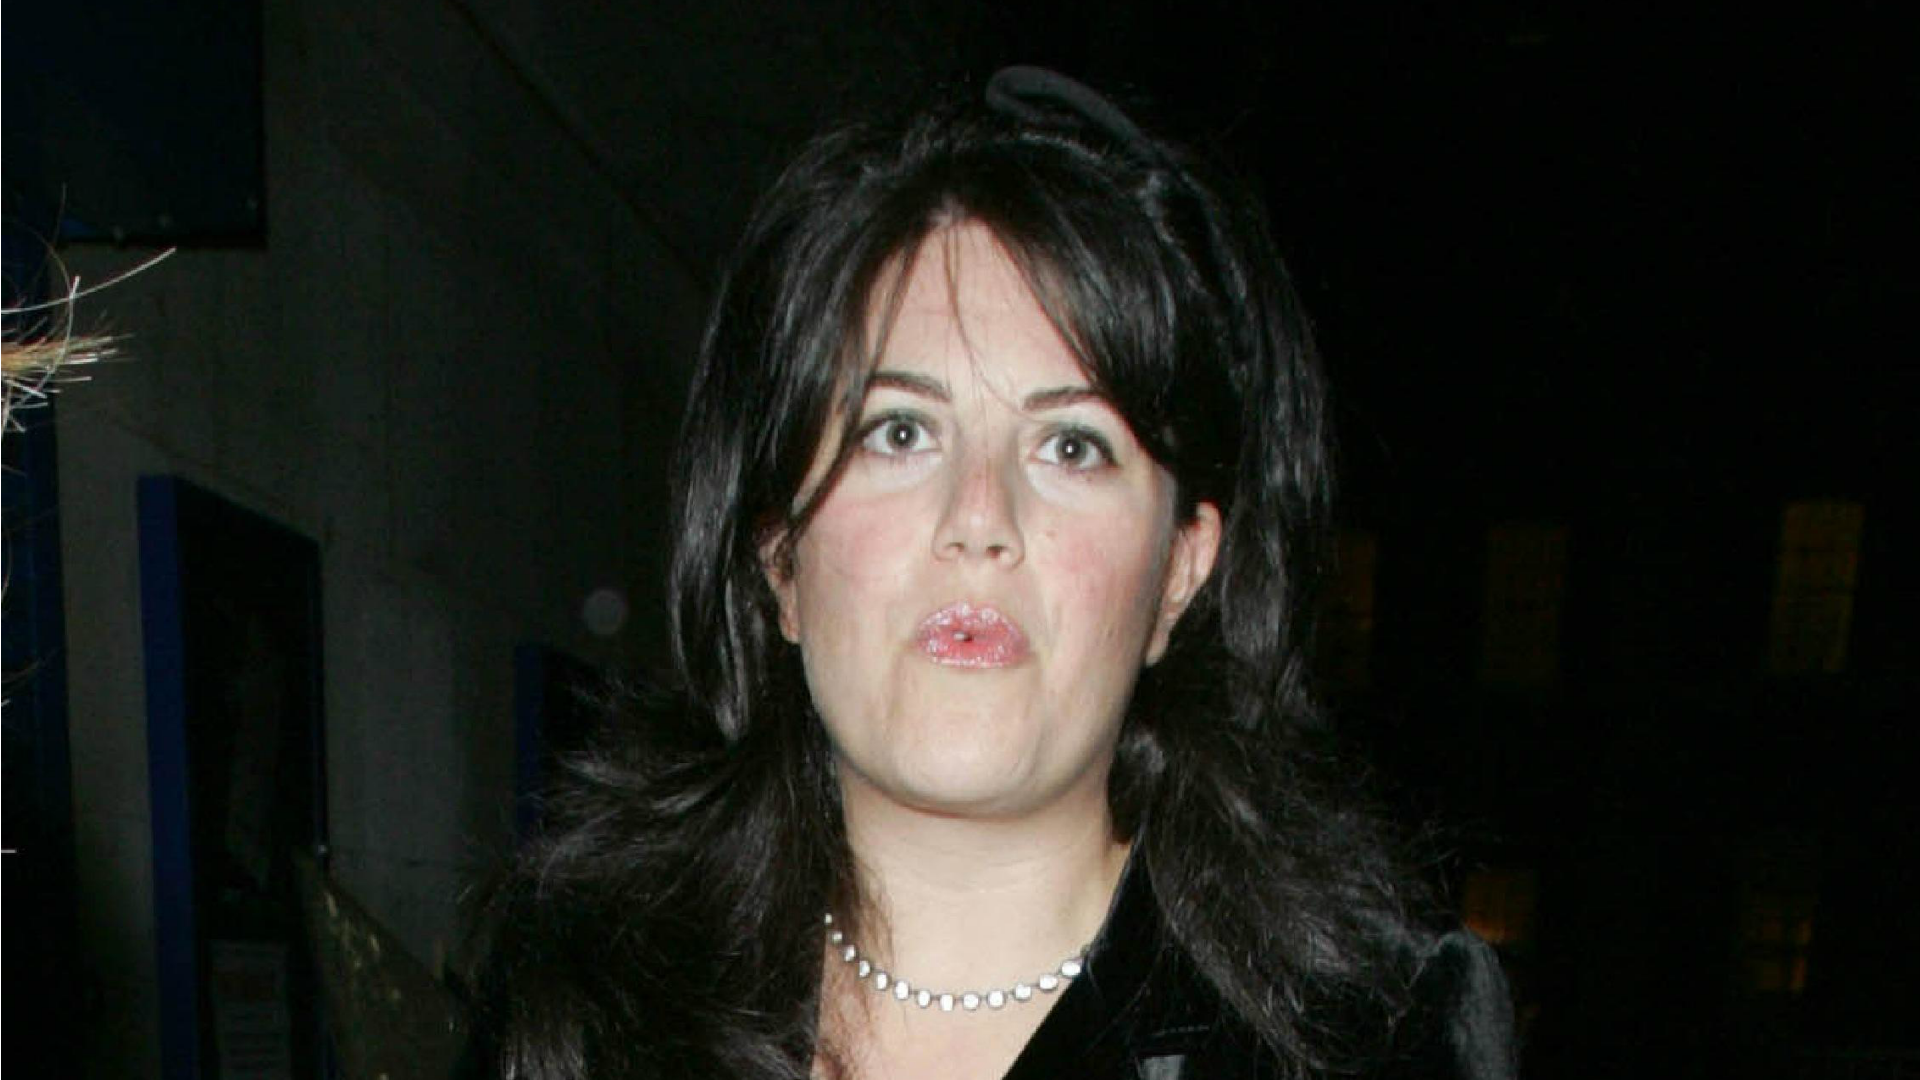 Monica lewinsky facial pic, hot girls getting fucked up